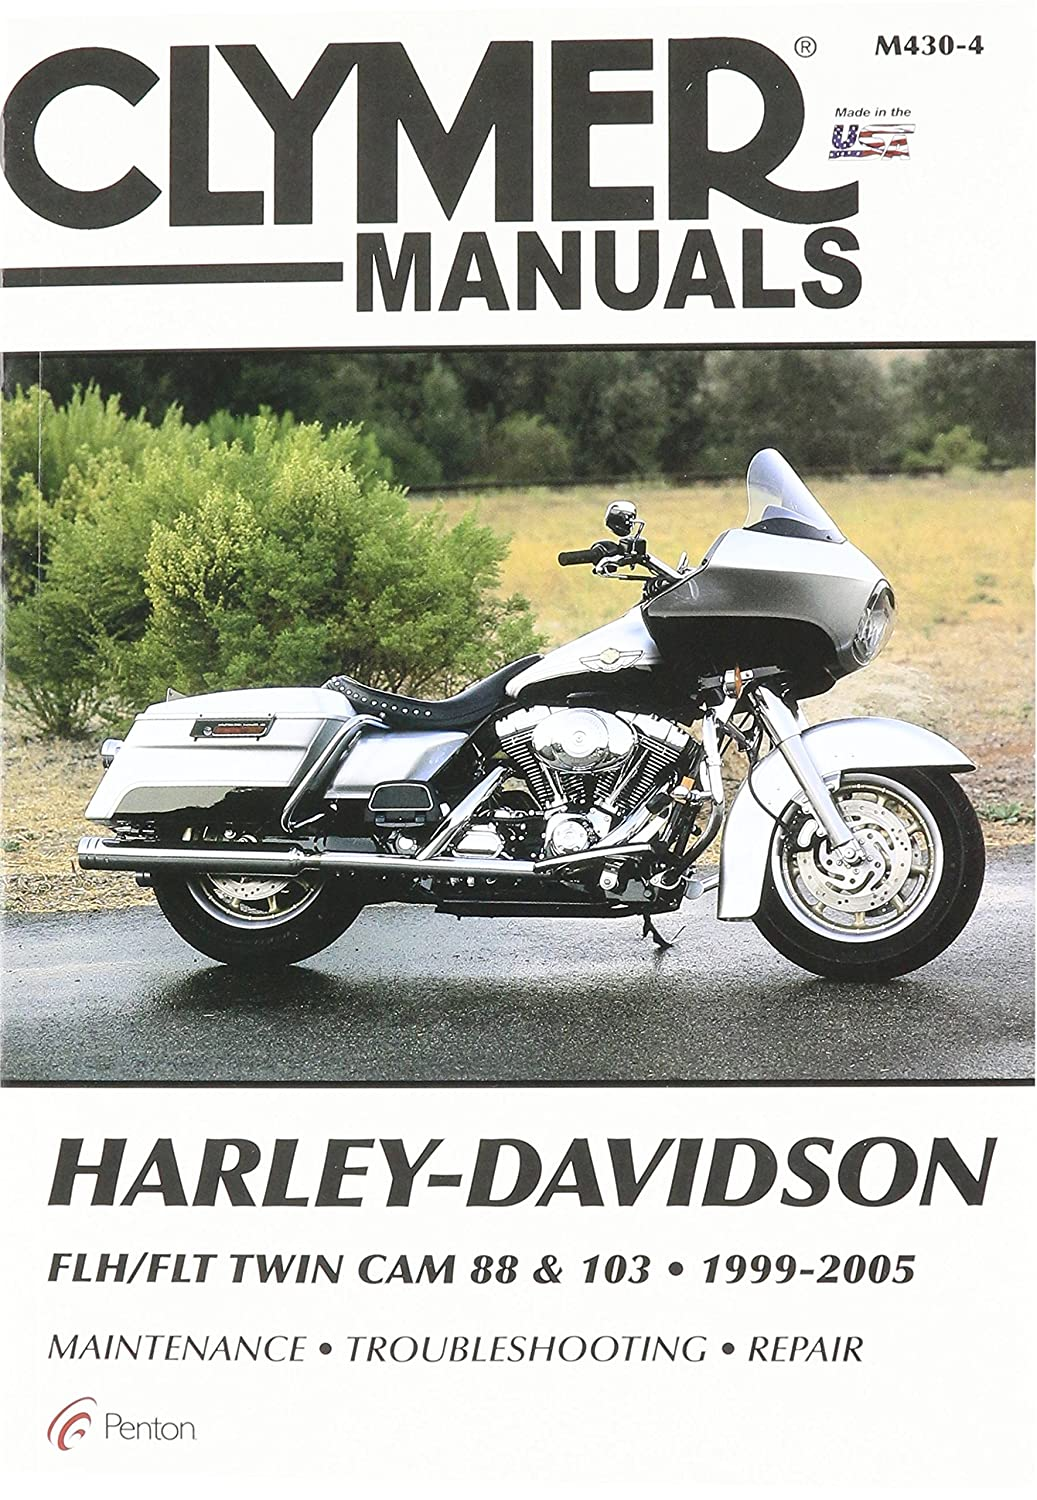 amazon com clymer repair manual for harley flh flt twin cam 88 99 rh amazon com Elektra Glide Ultra Classic 2005 2005 flhtcui service manual